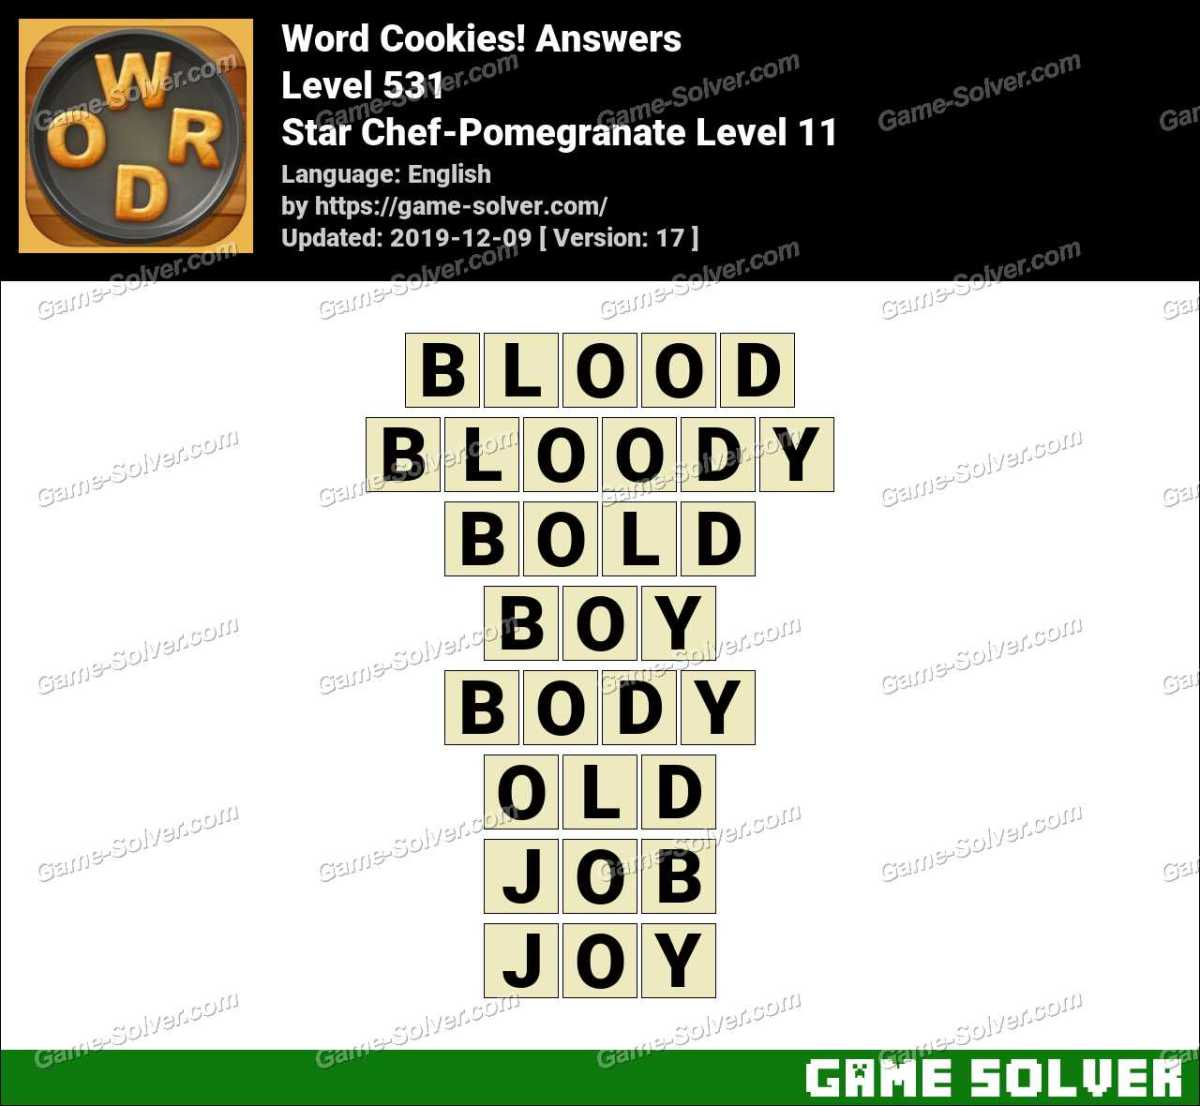 Word Cookies Star Chef-Pomegranate Level 11 Answers